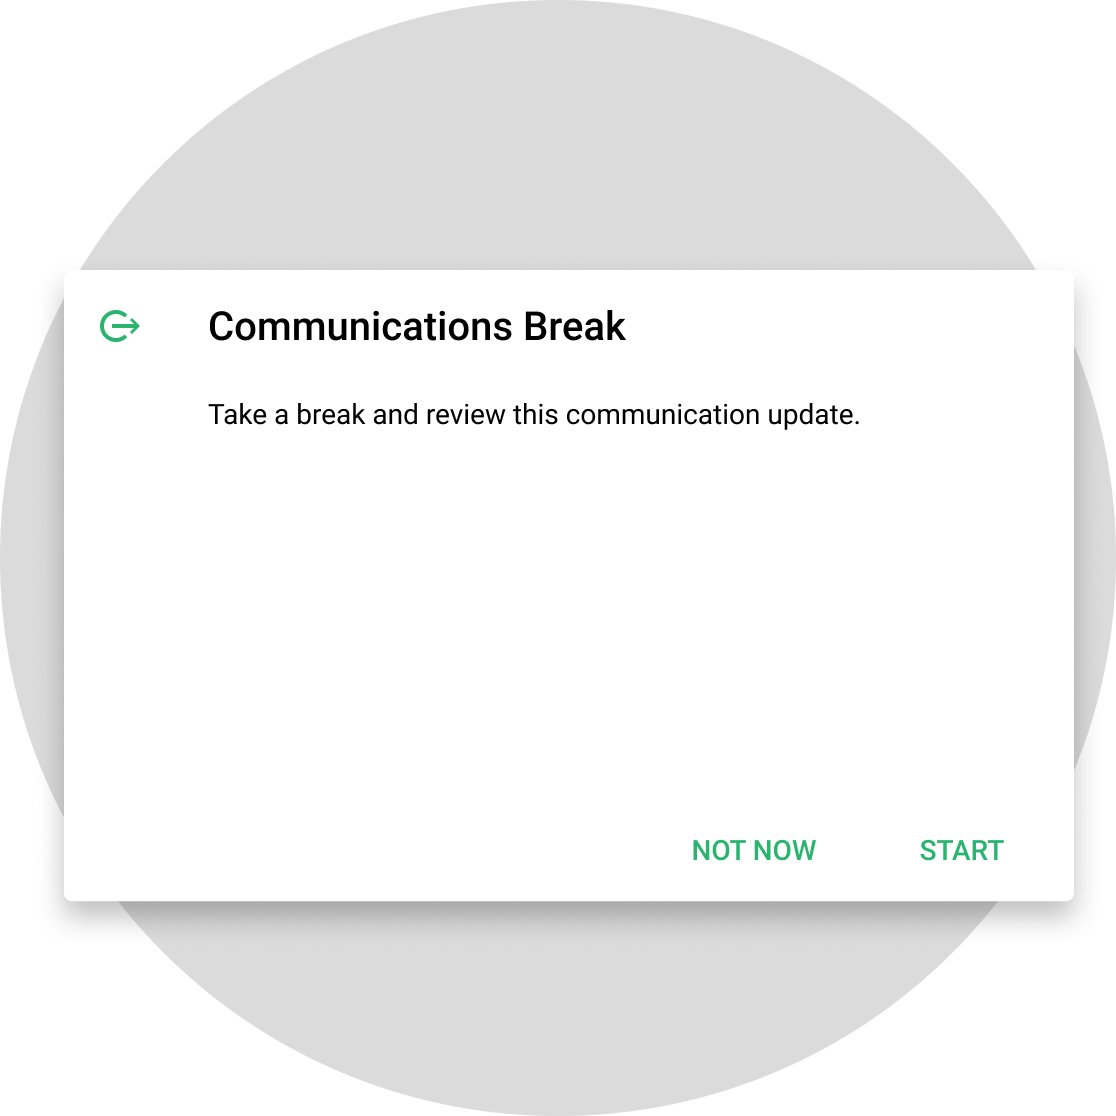 Communication Break notification example